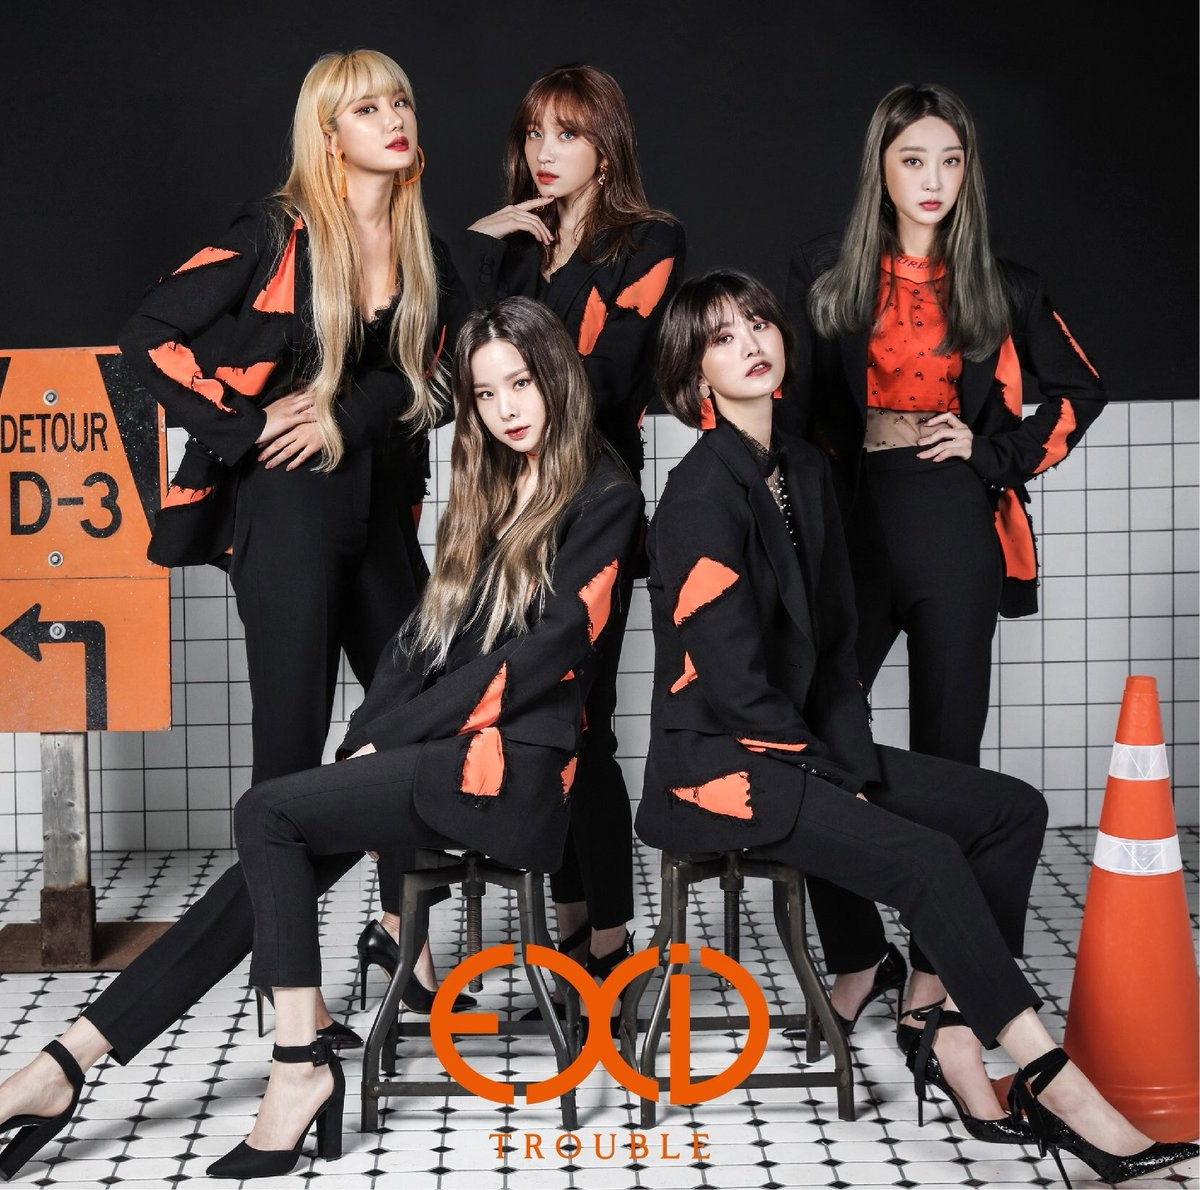 EXID – TROUBLE [AAC 256 / WEB] [2019.04.03]